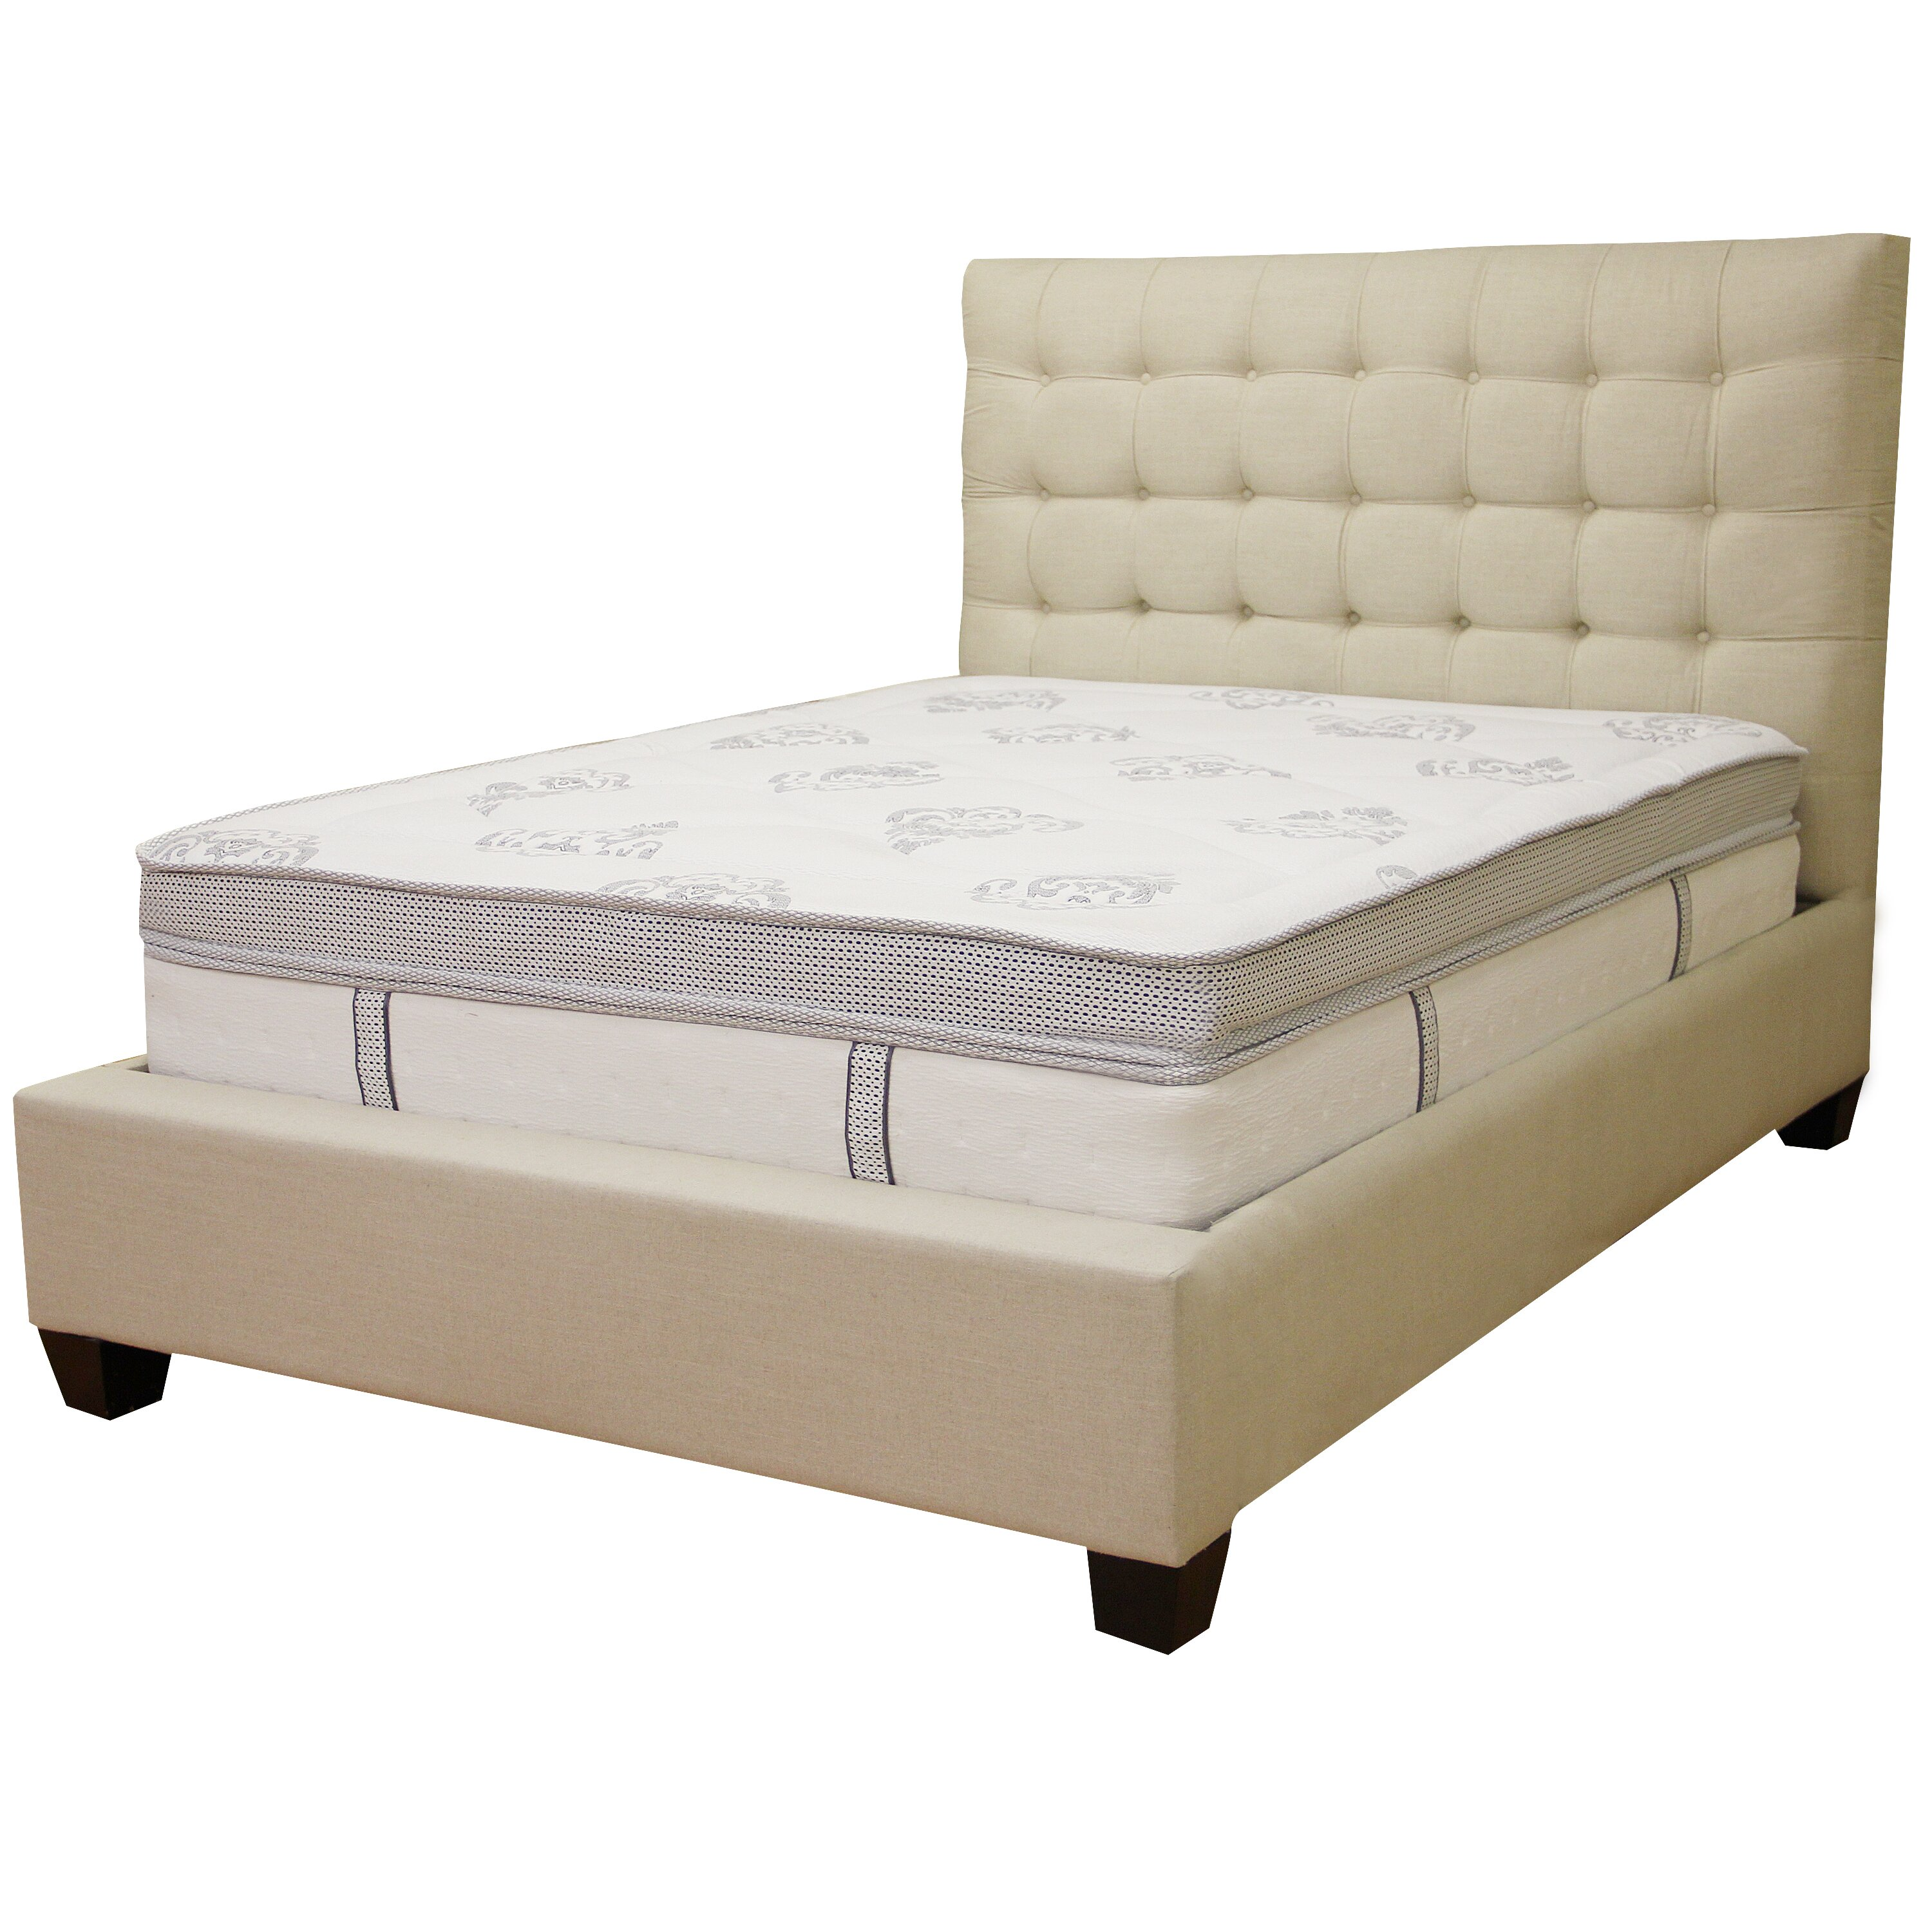 "Classic Brands Gramercy 14"" Cool Gel Memory Foam"